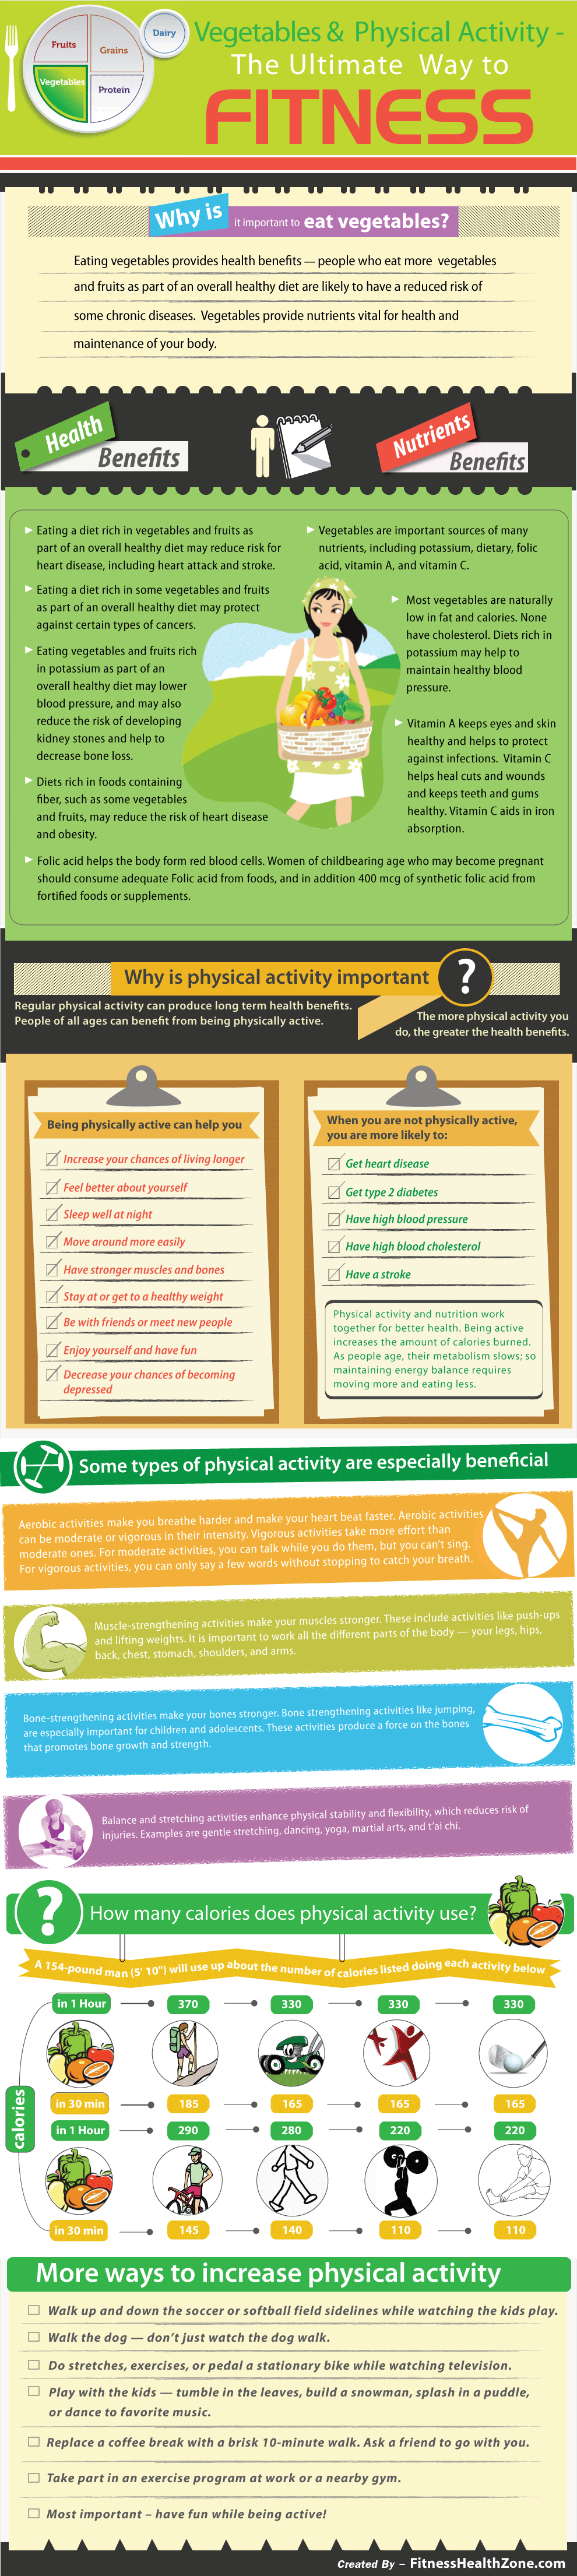 Vegetables & Physical Activity